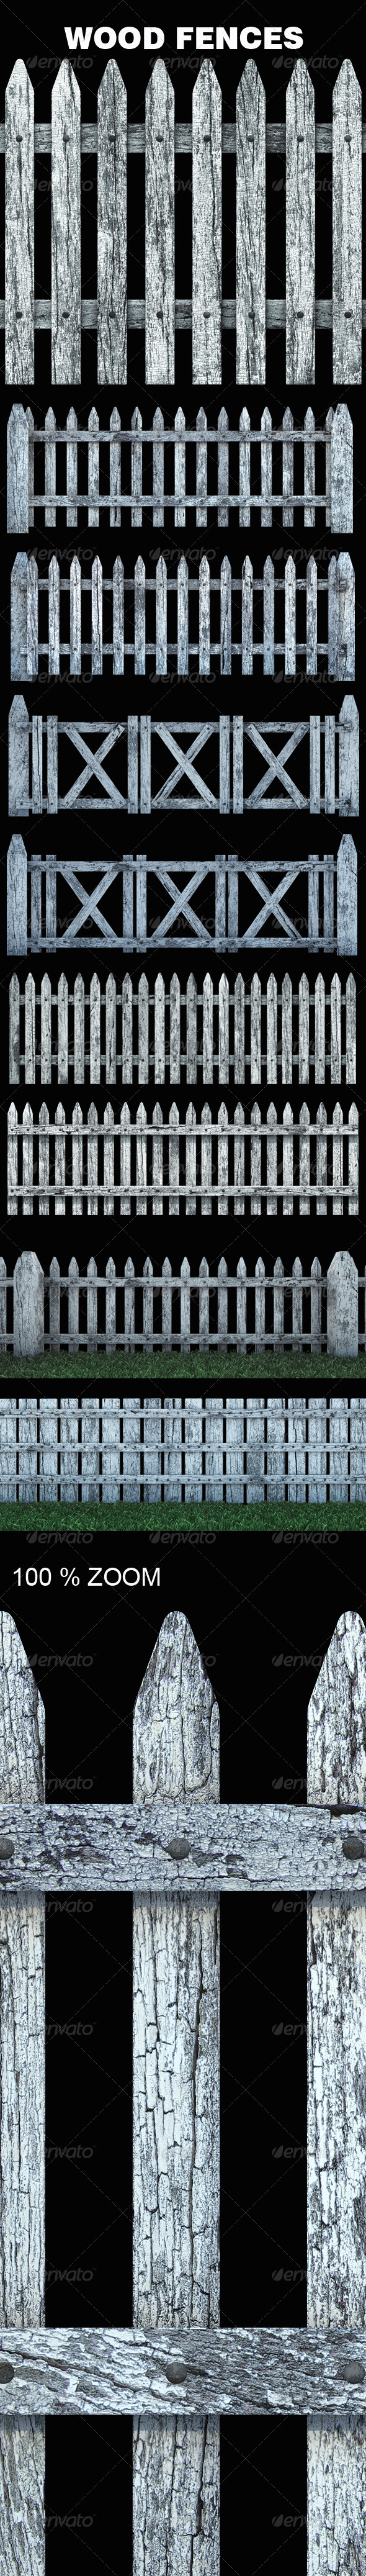 Old White Wood Fences - Objects 3D Renders